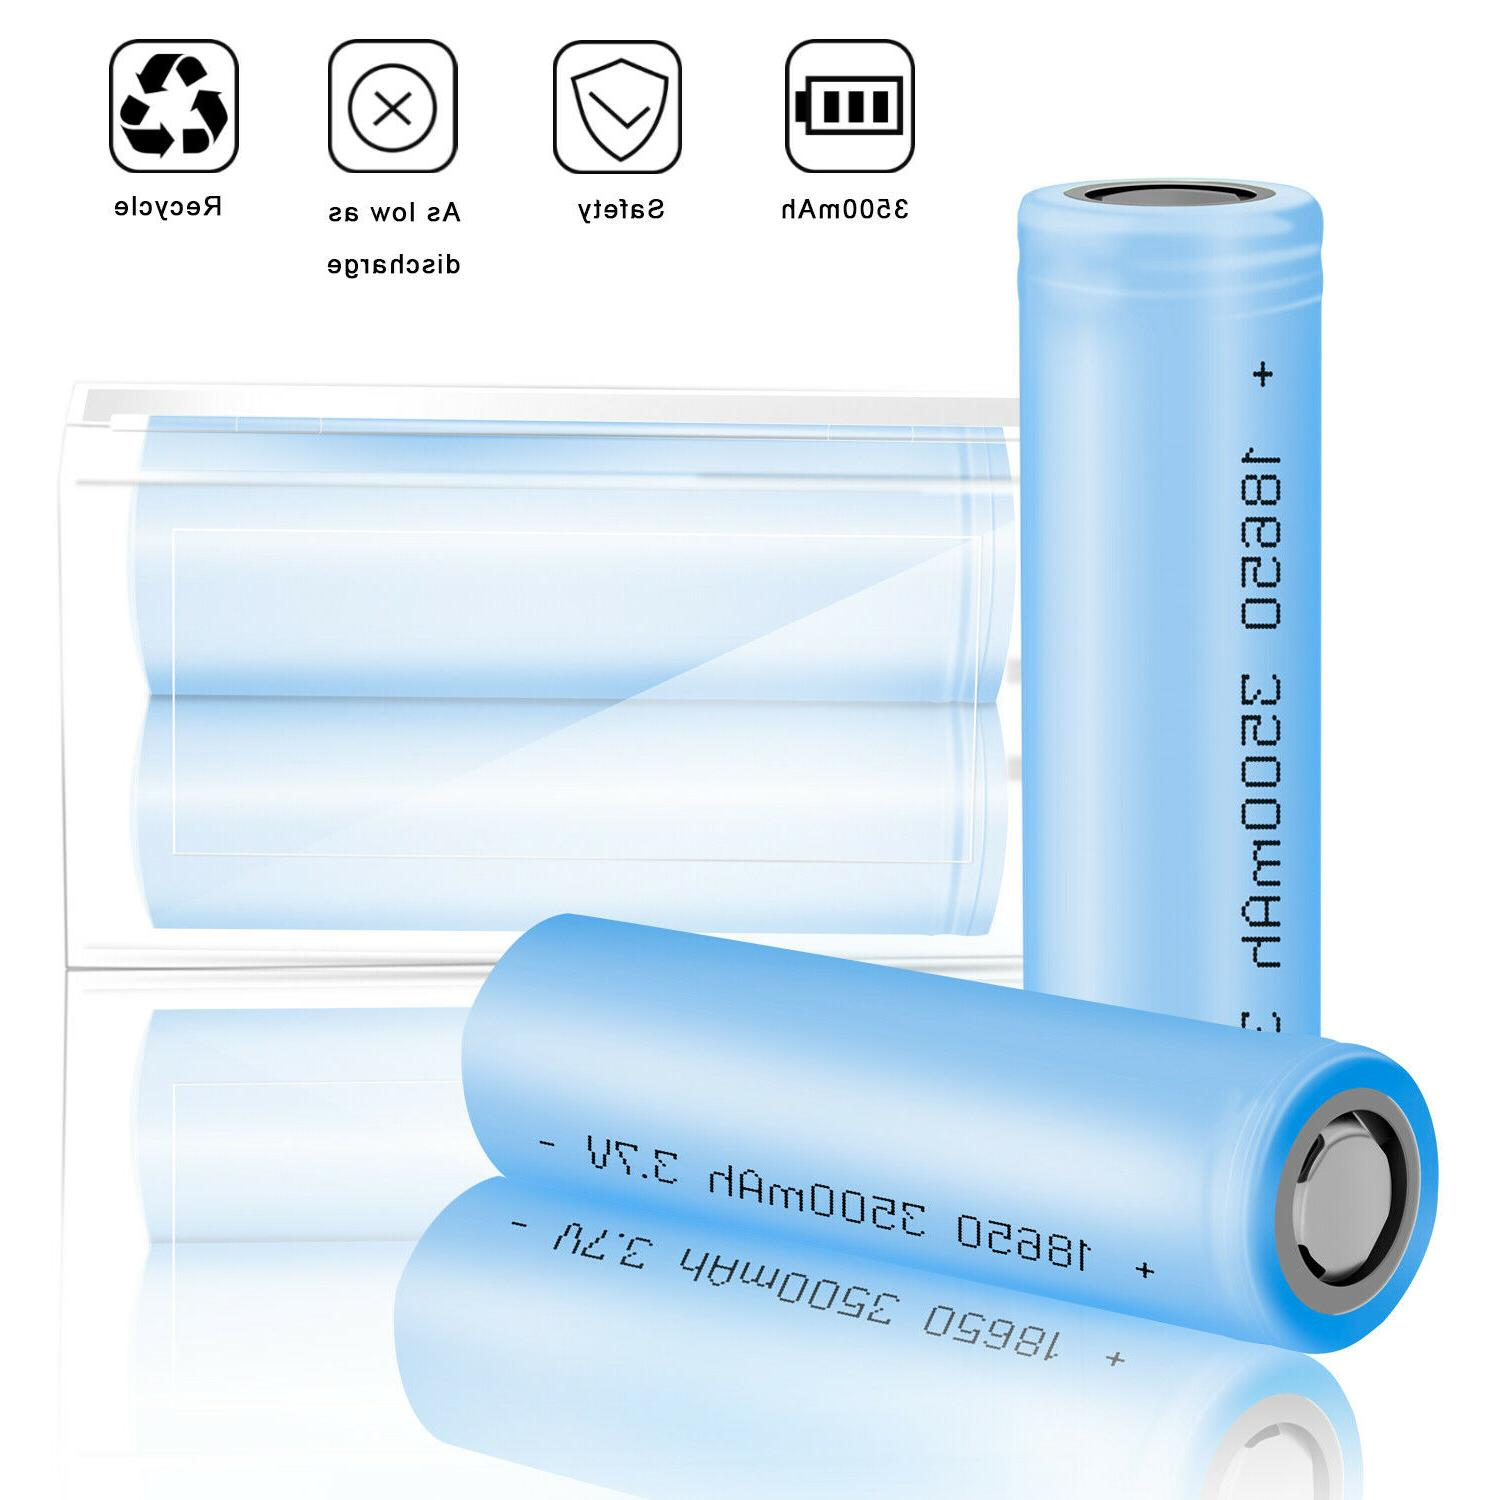 10 Batteries Rechargeable Smok+Case